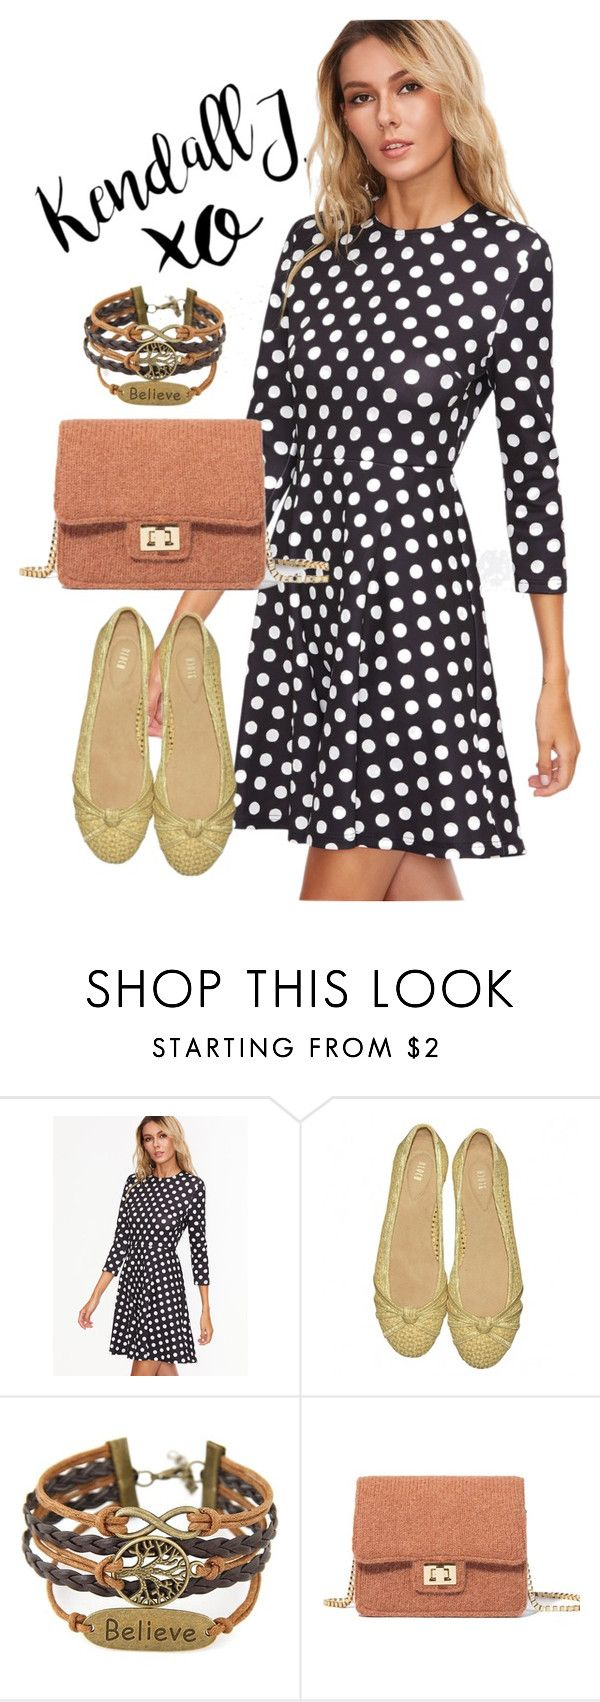 """""""dress"""" by masayuki4499 ❤ liked on Polyvore featuring xO Design and Bloch"""